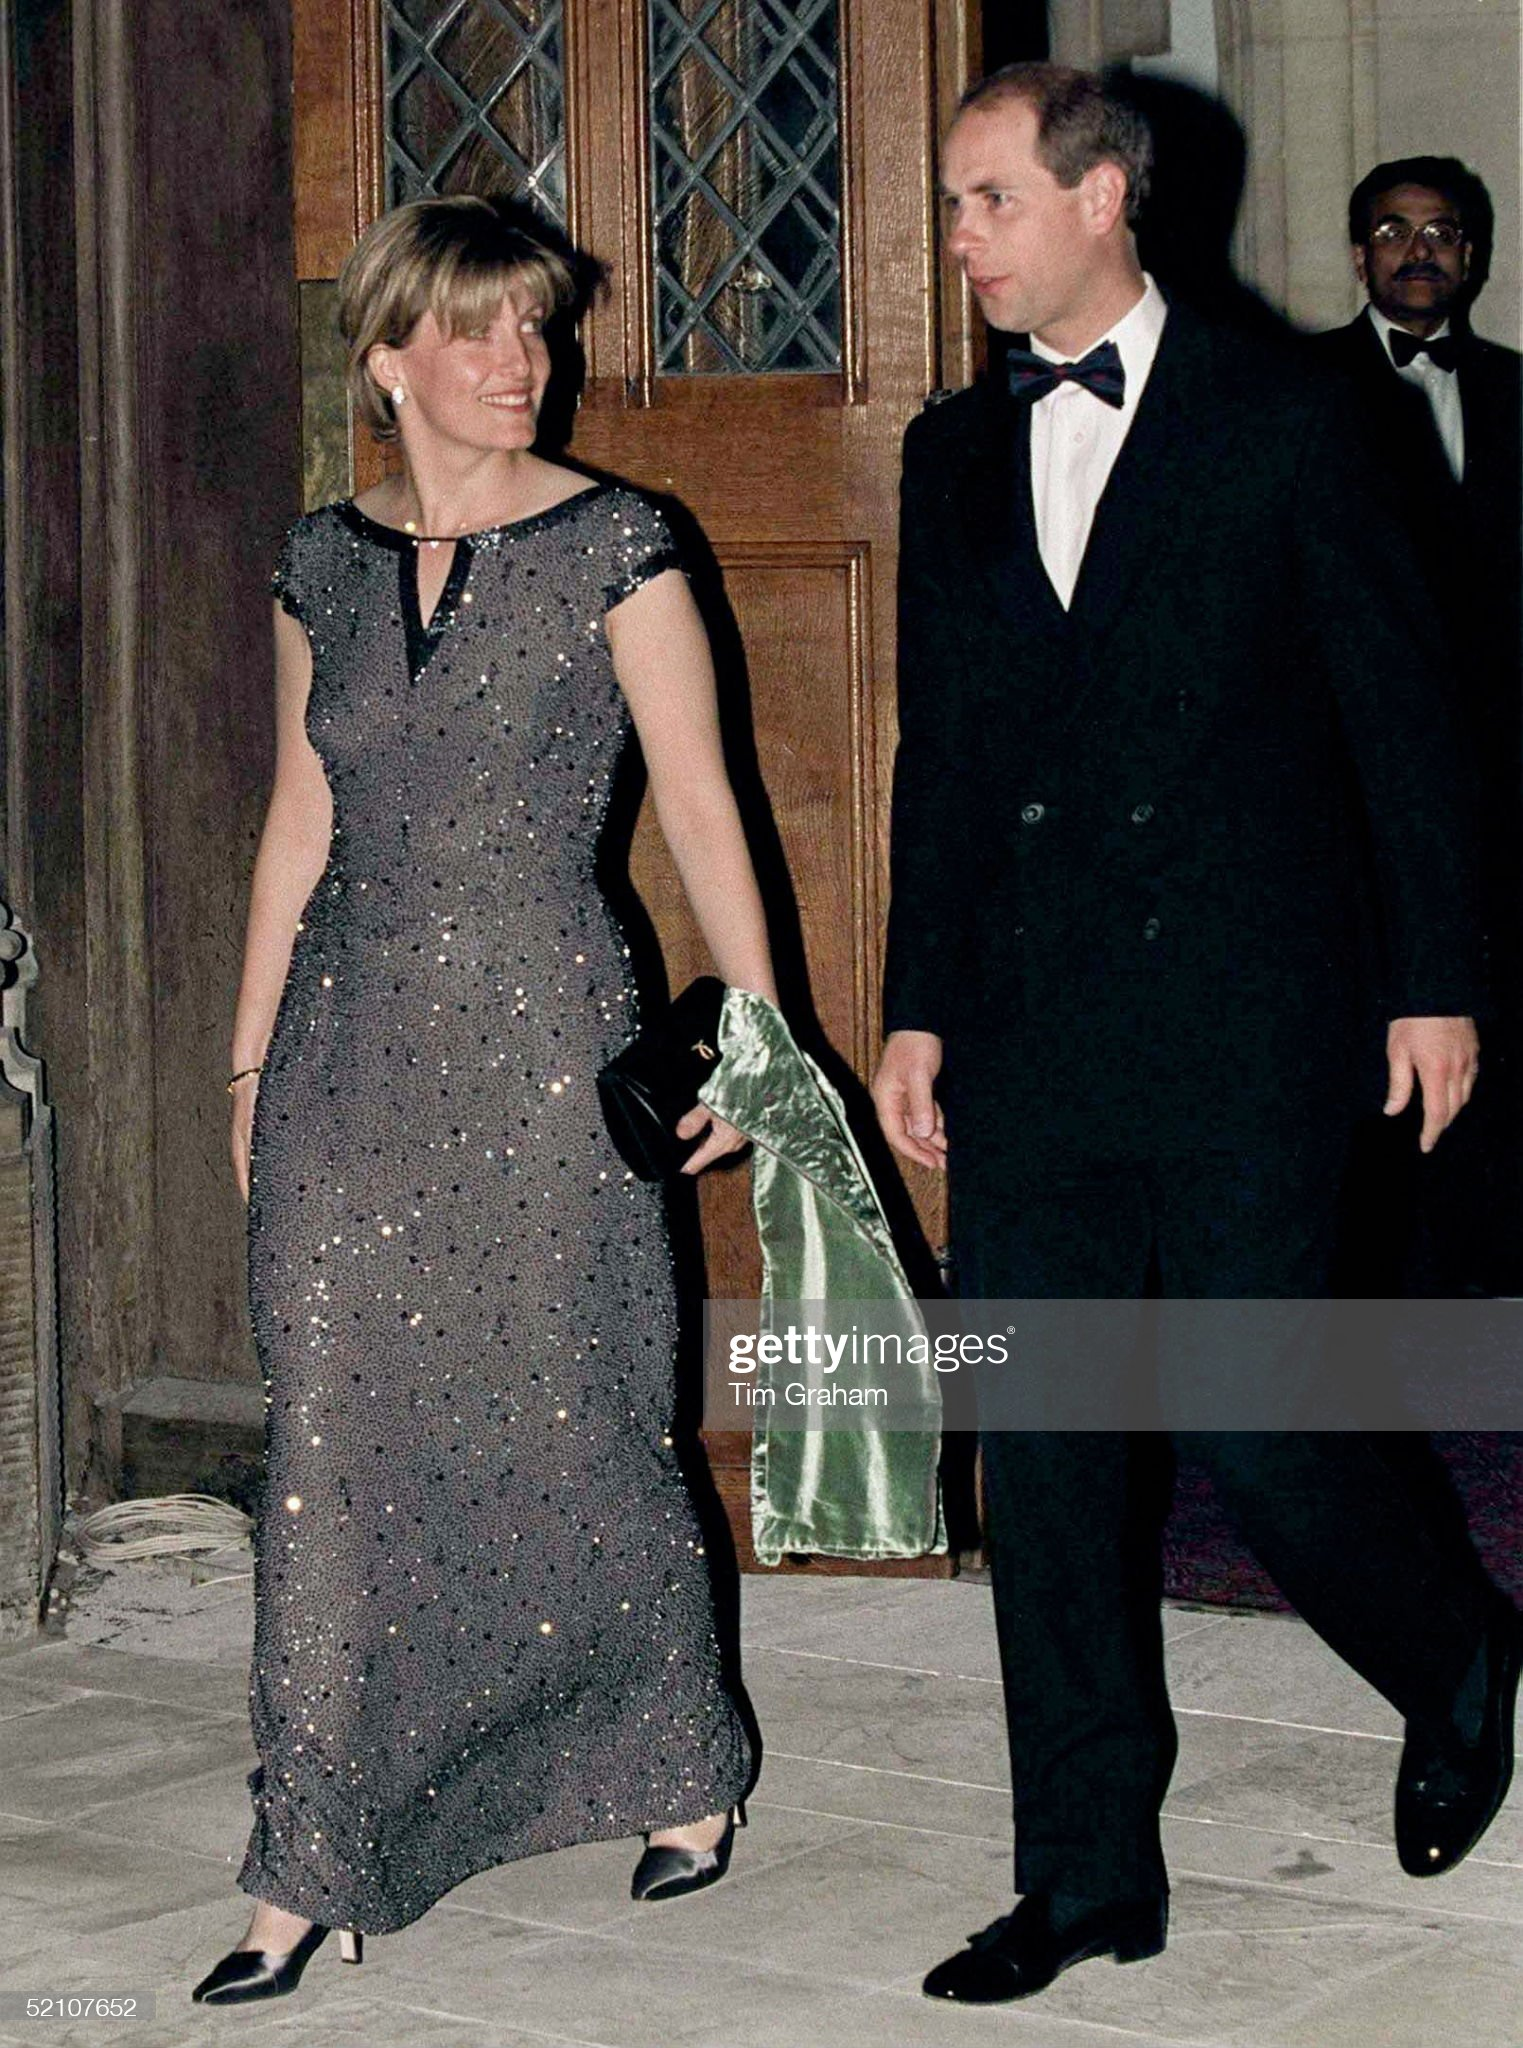 Sophie And Prince Edward Guildhall : News Photo